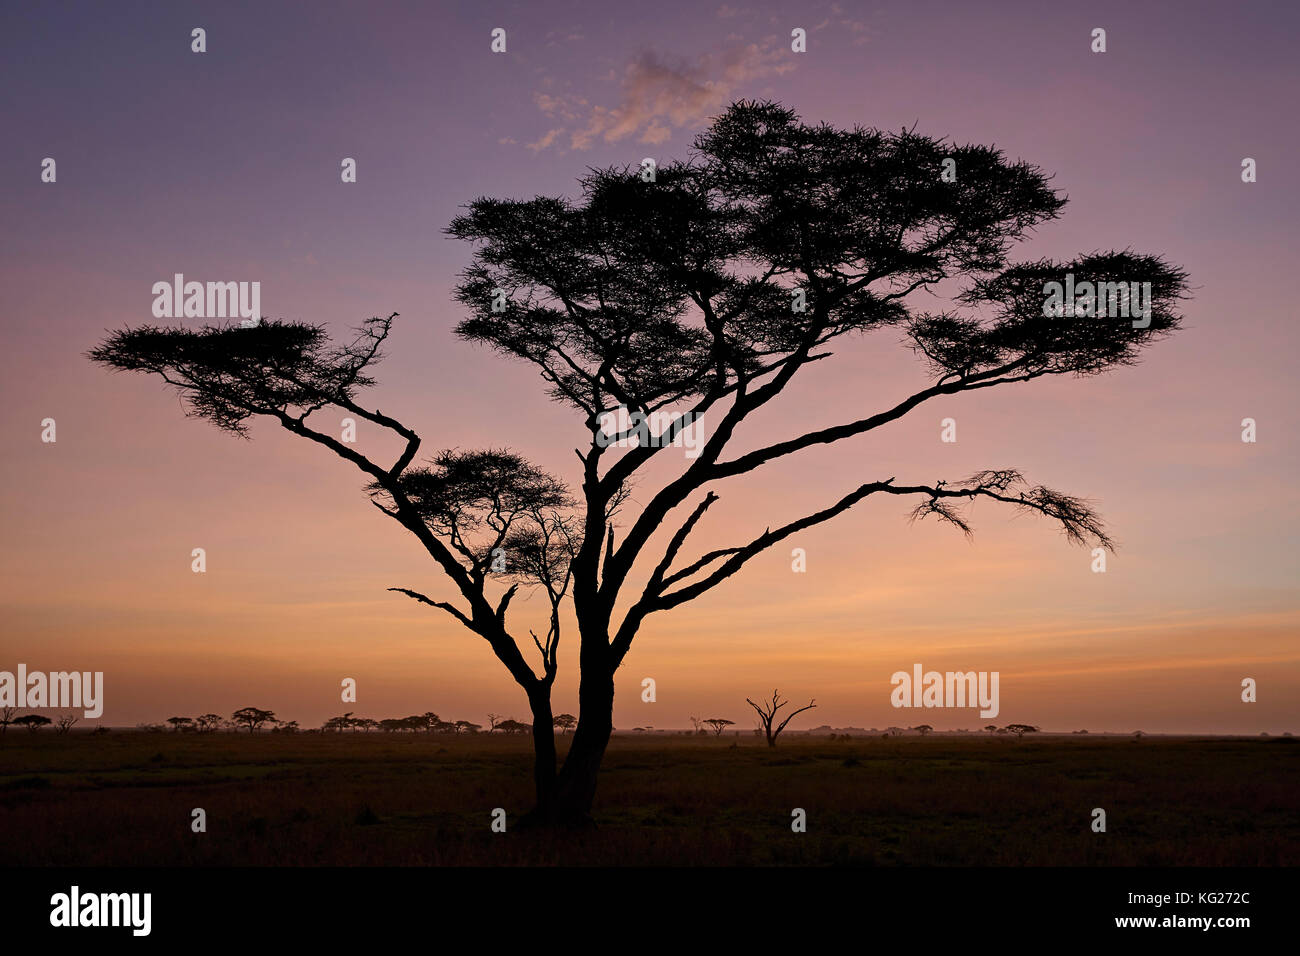 Acacia tree at dawn, Serengeti National Park, Tanzania, East Africa, Africa - Stock Image